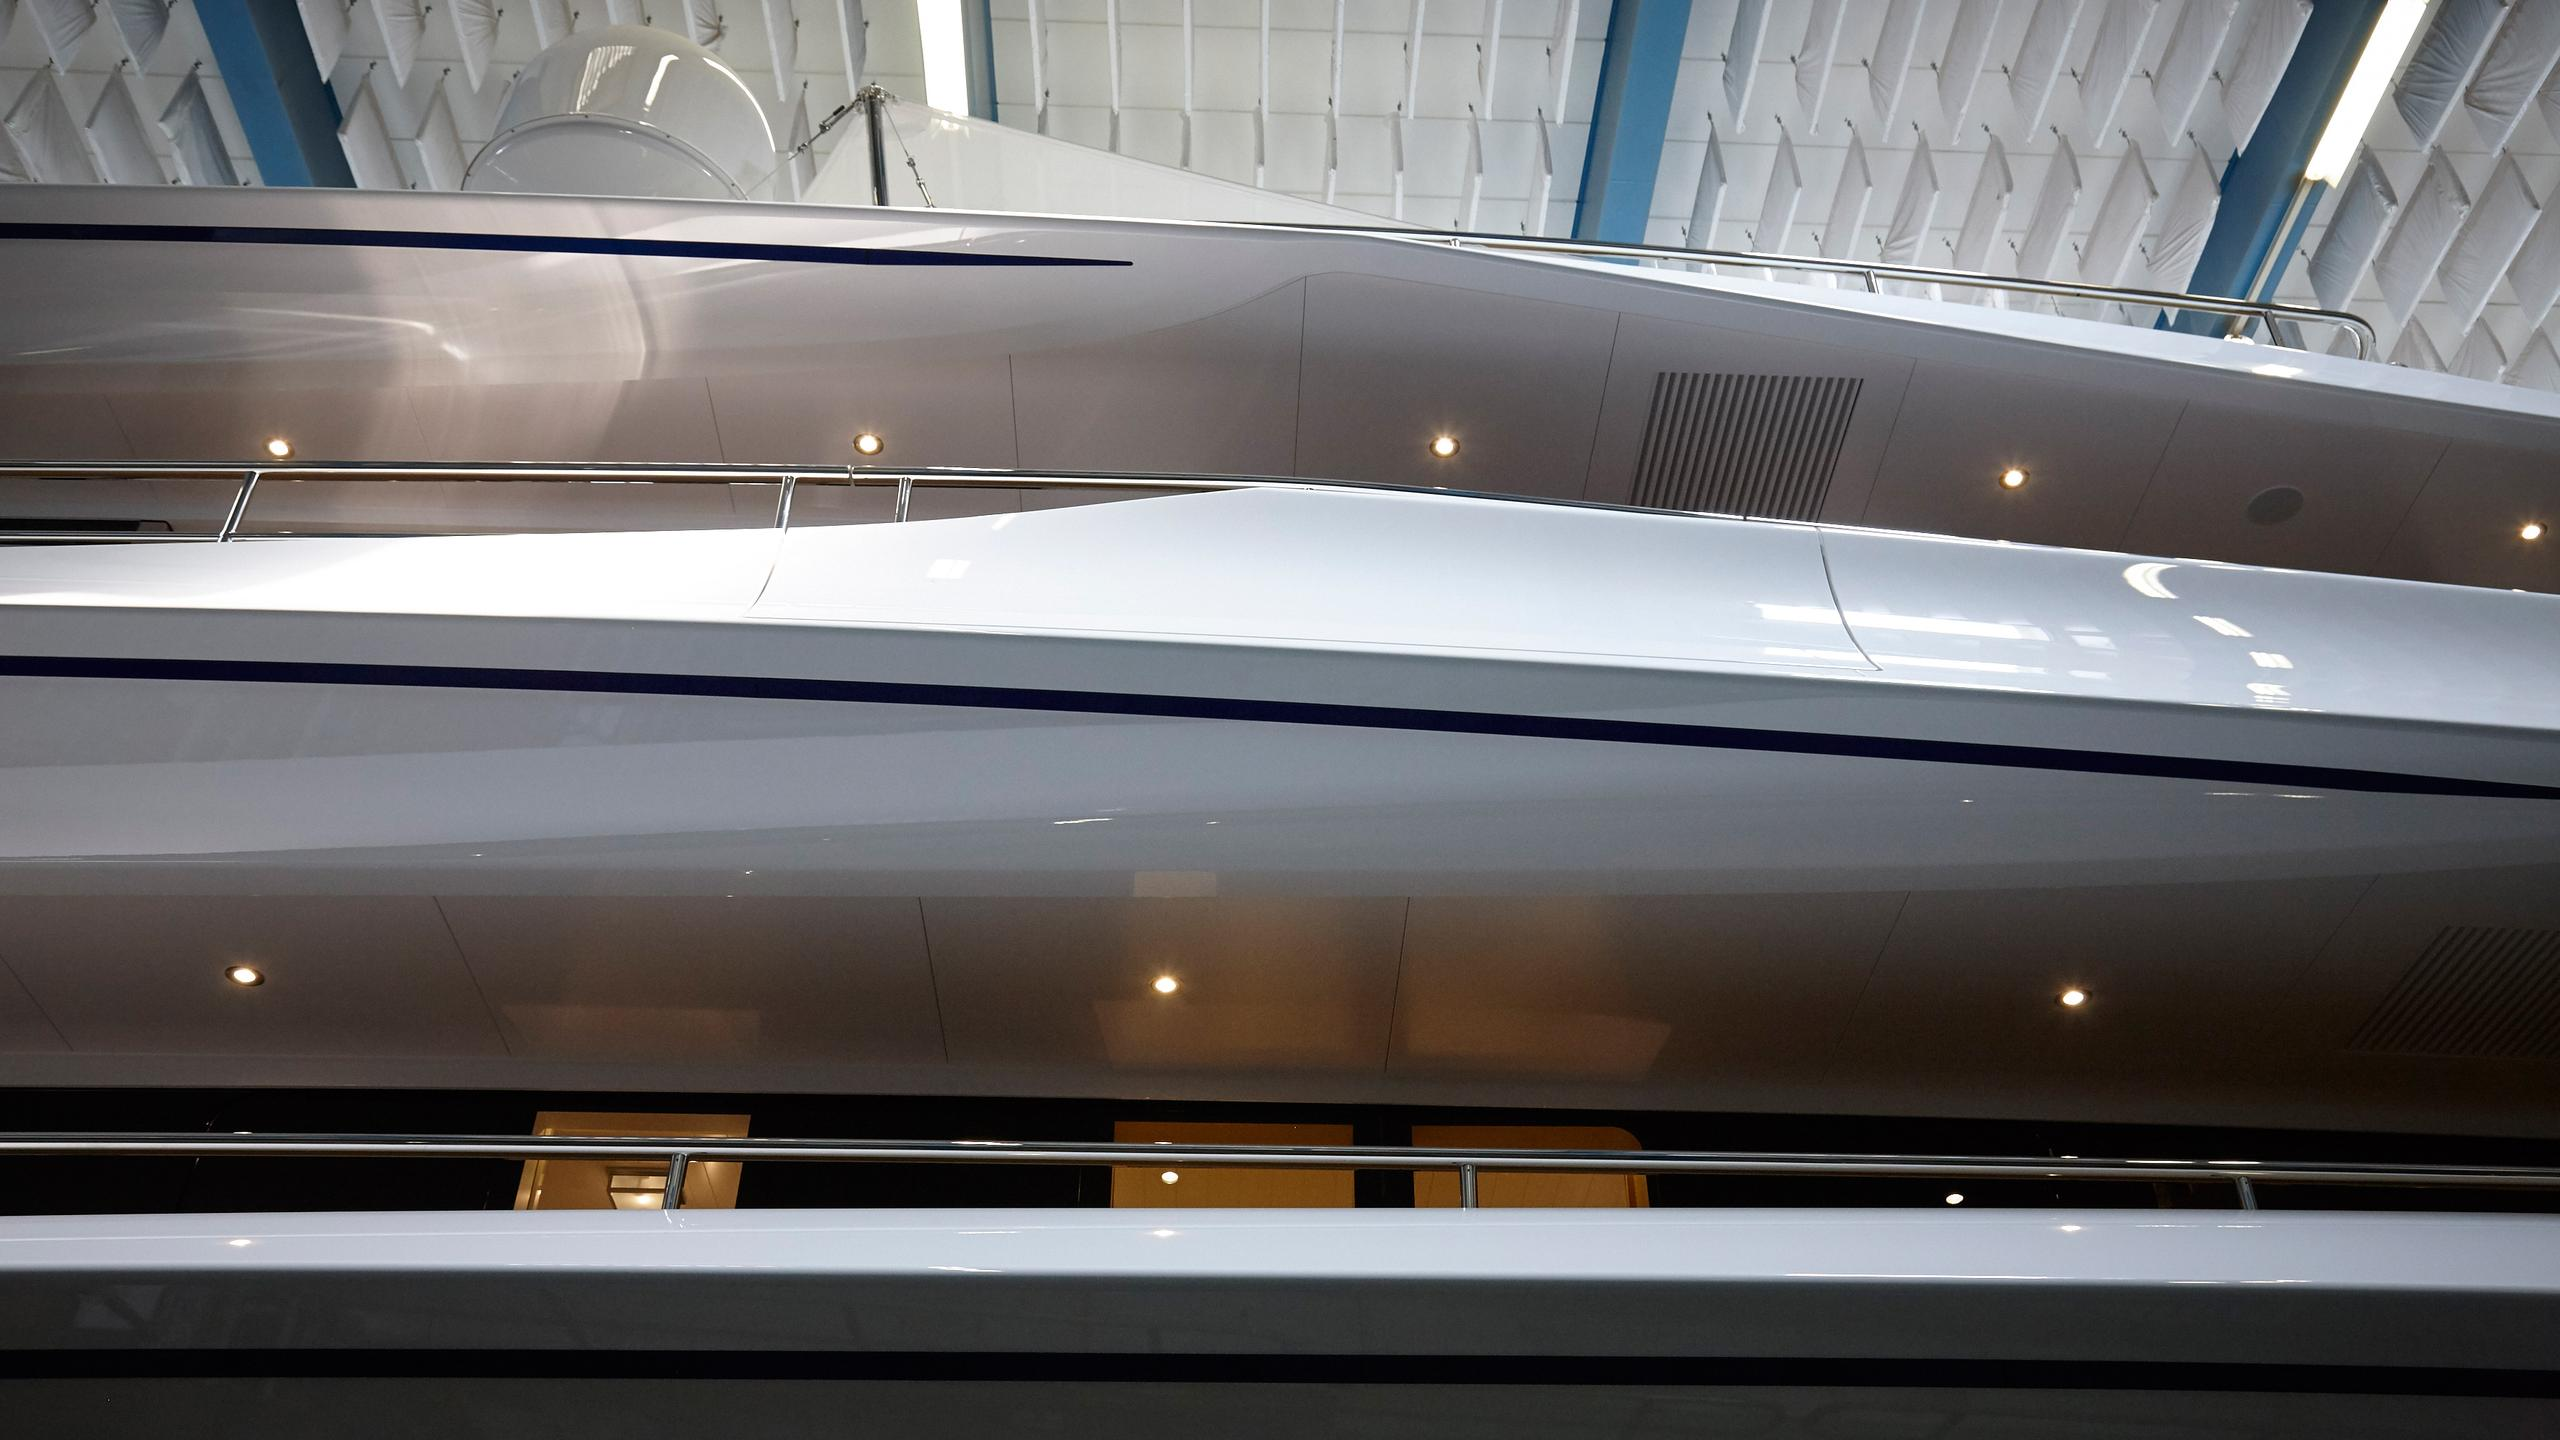 joy-motor-yacht-feadship-2016-70m-shipyard-shed-detail-profile-lines